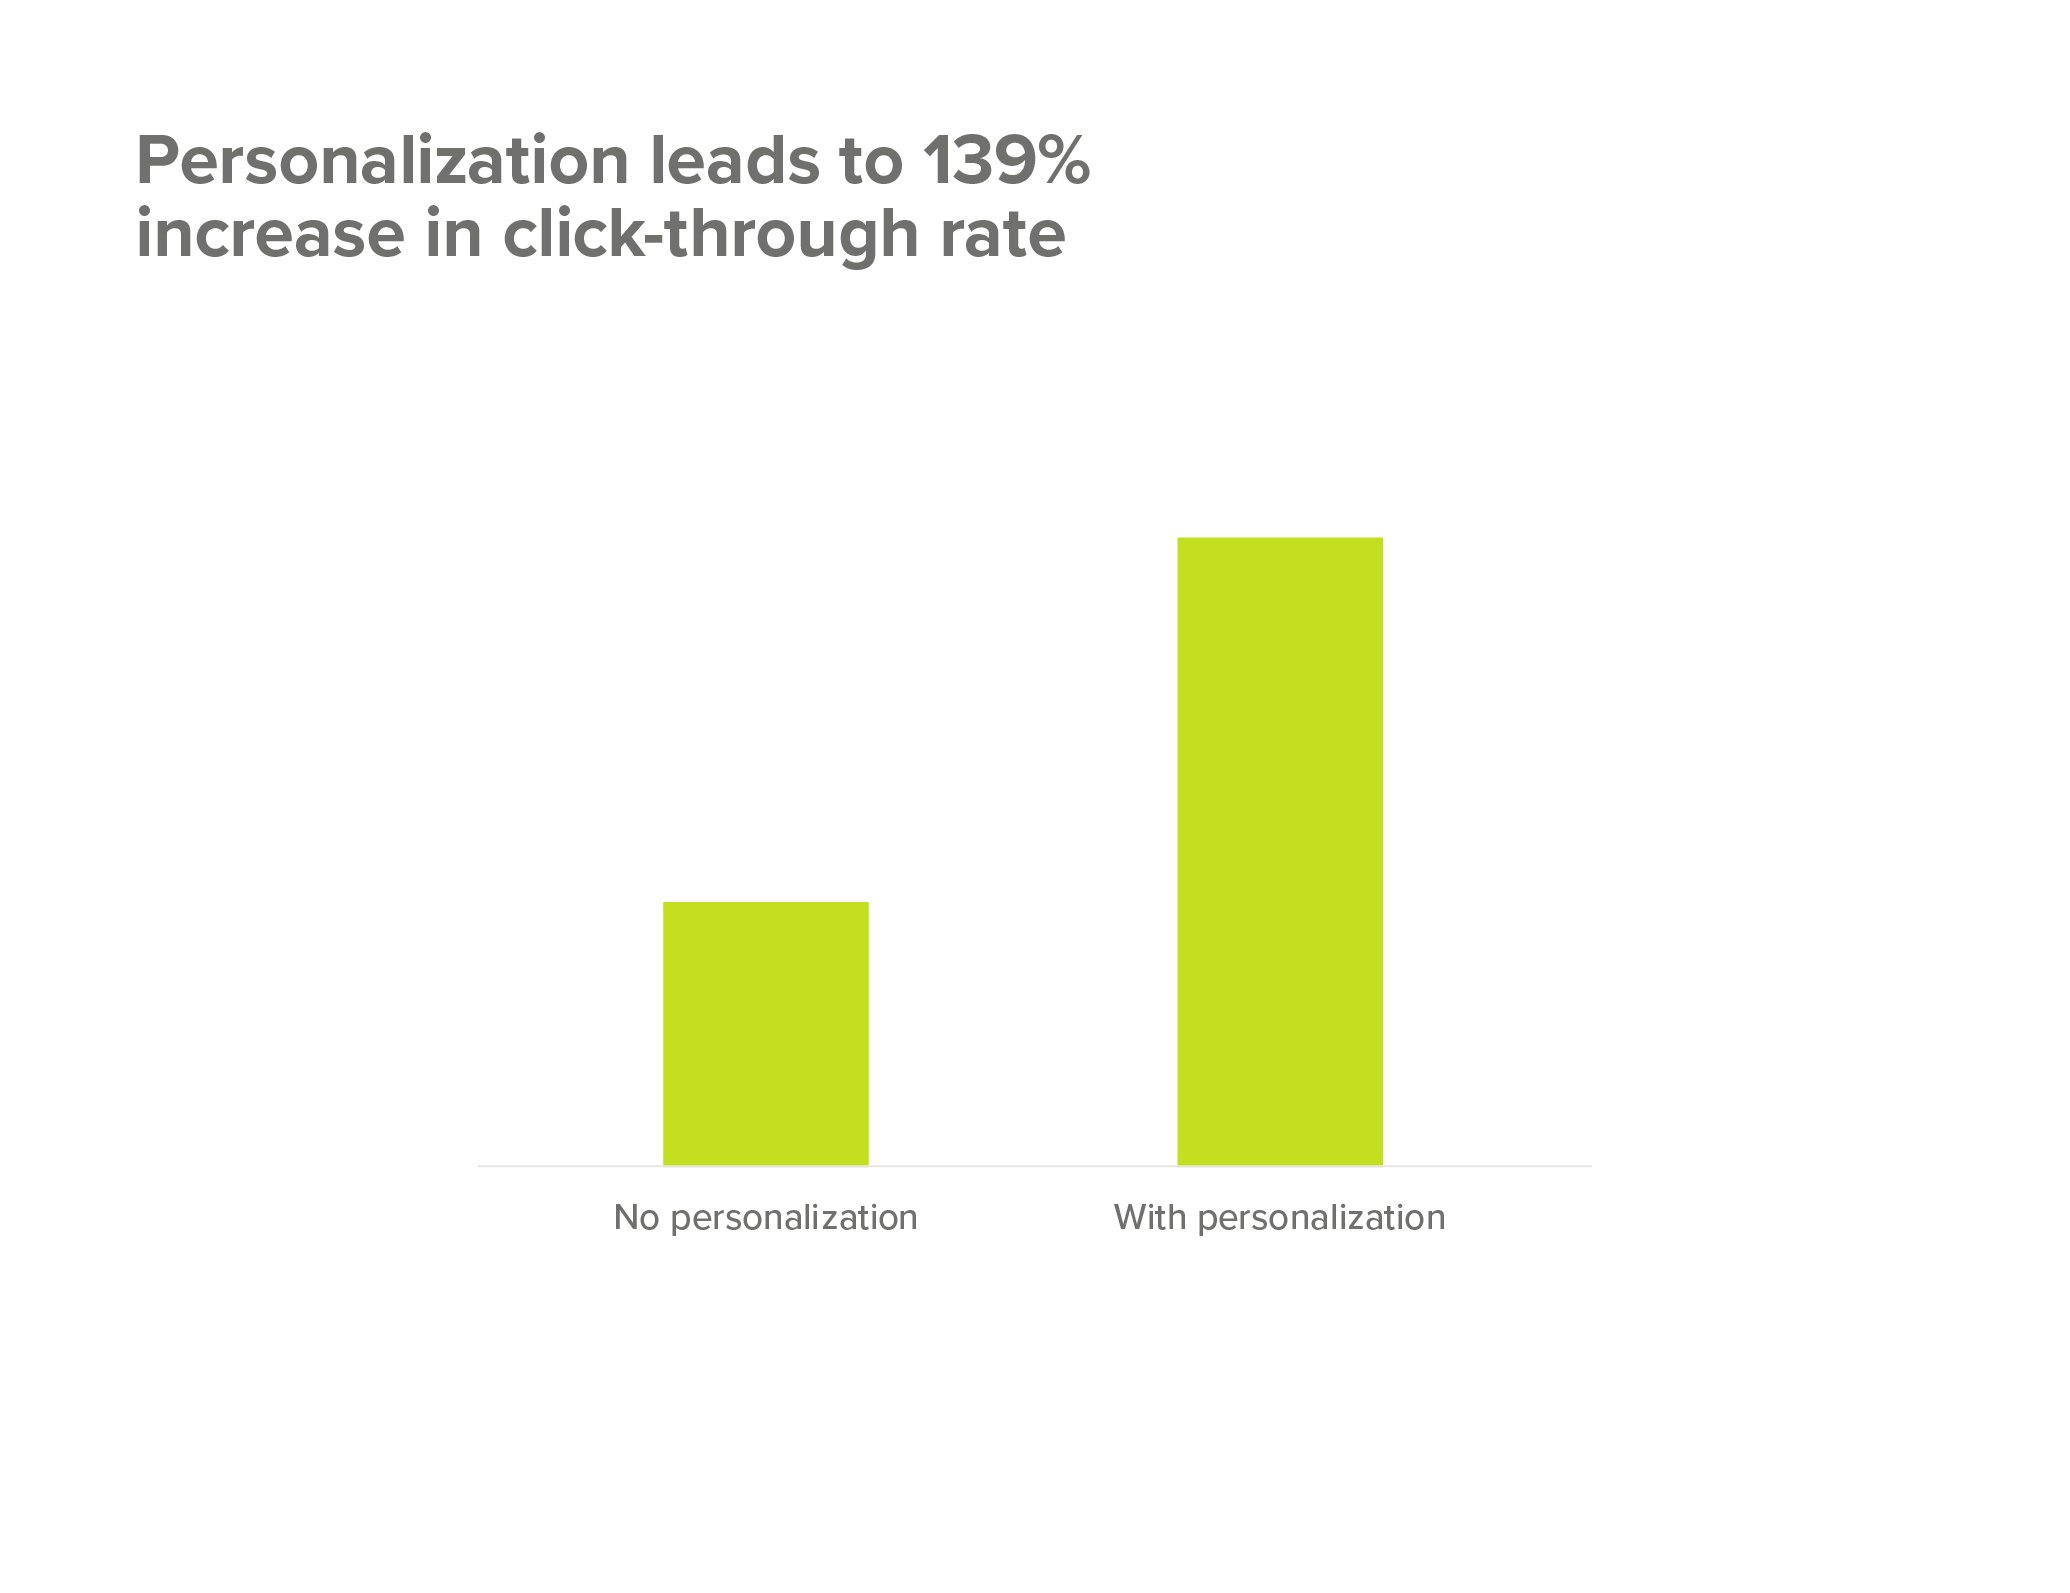 Personalization impact on higher click through rates